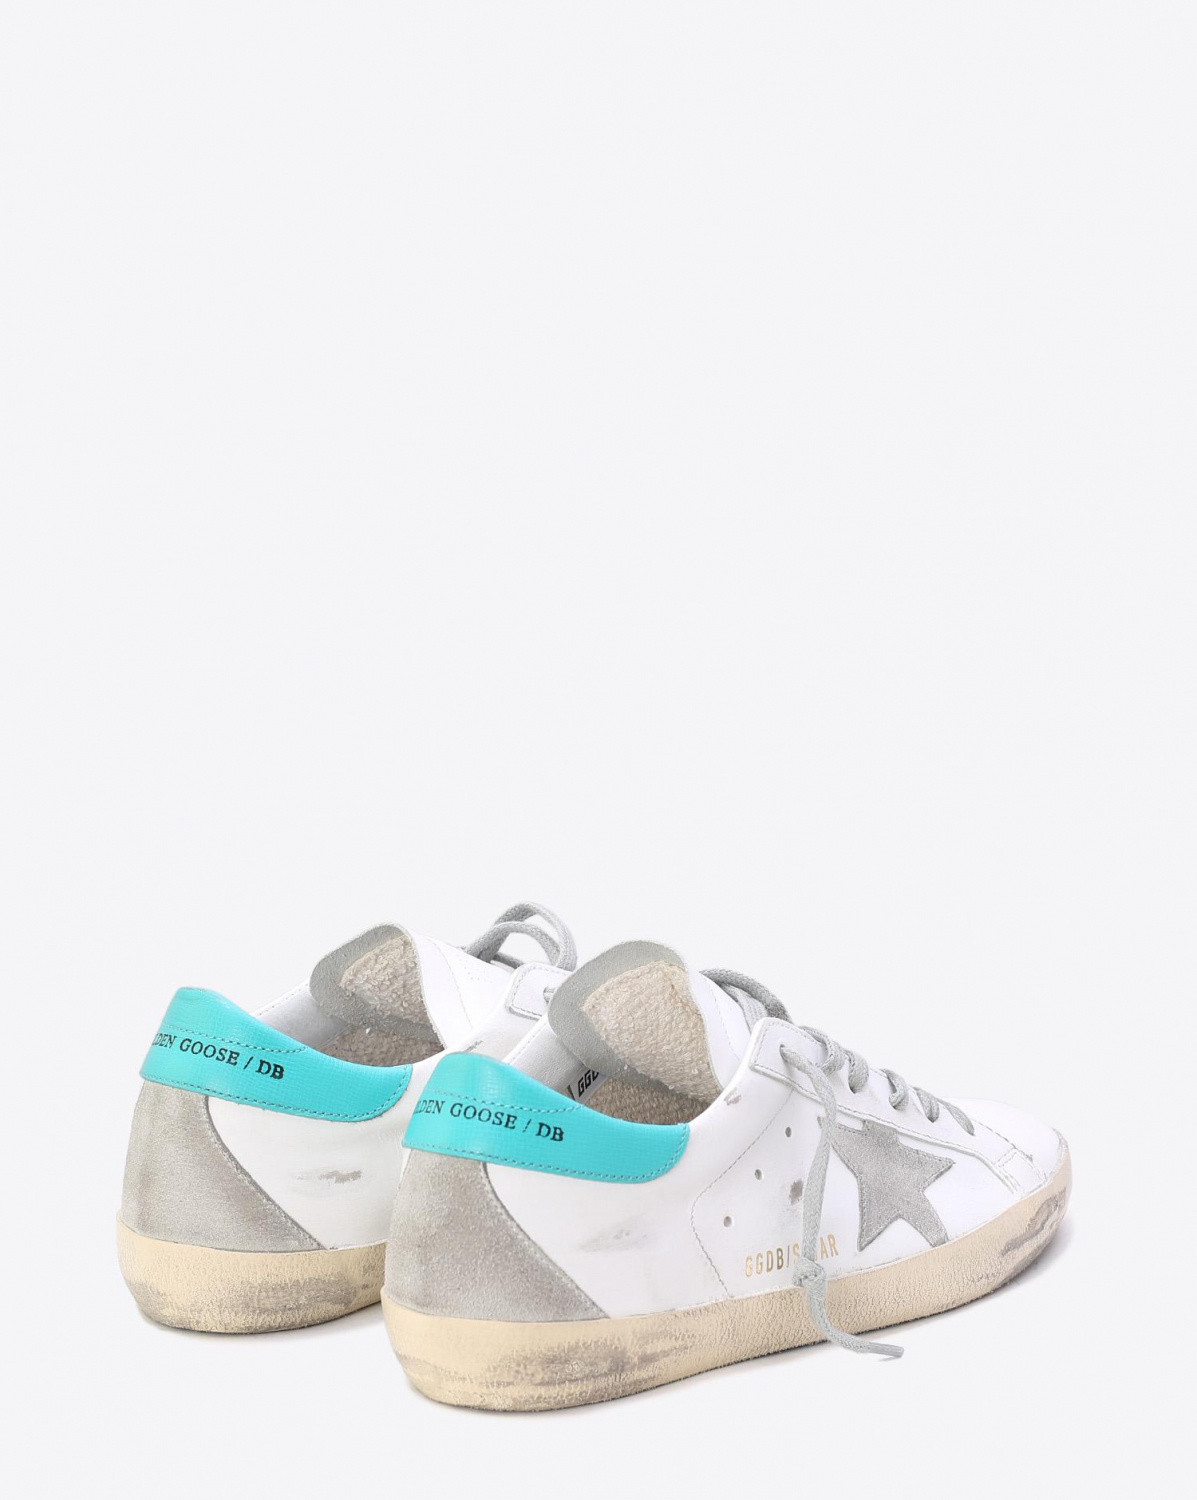 Golden Goose Woman Collection Sneakers Superstar White Aquamarine Cream